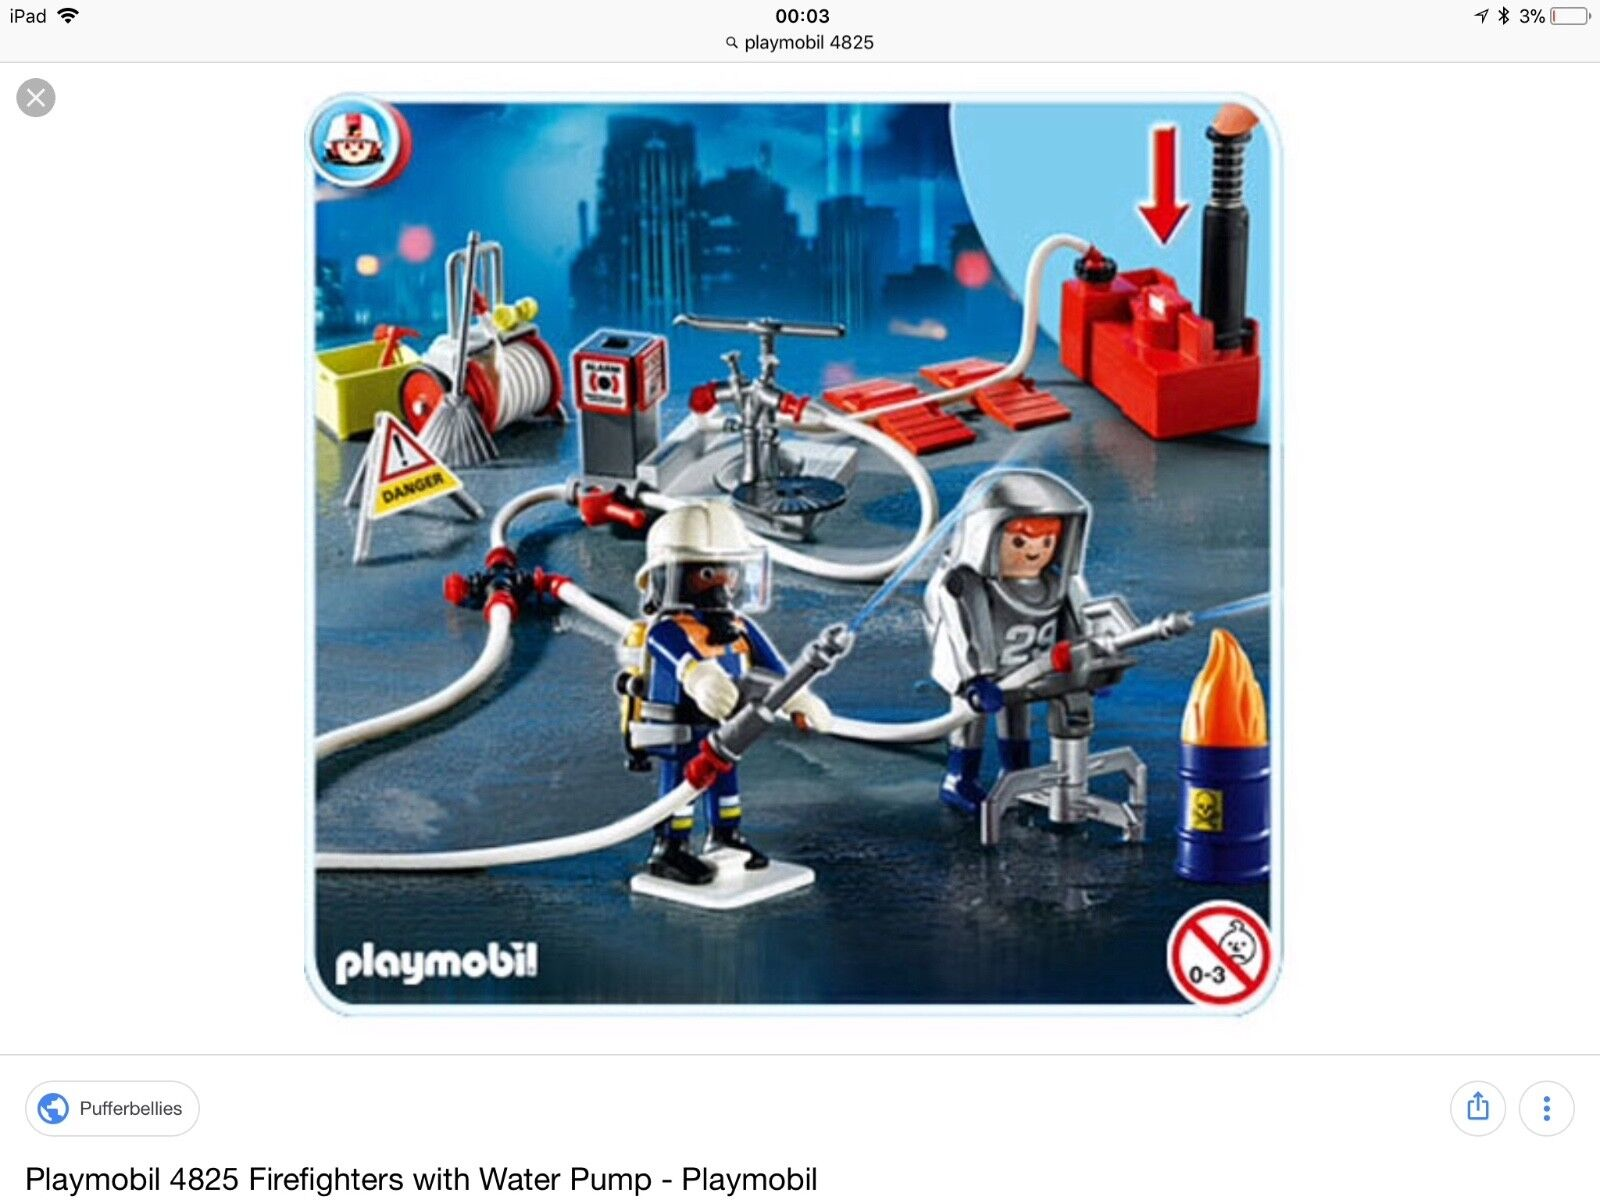 Playmobil 4825 Firefighters with Water Pump